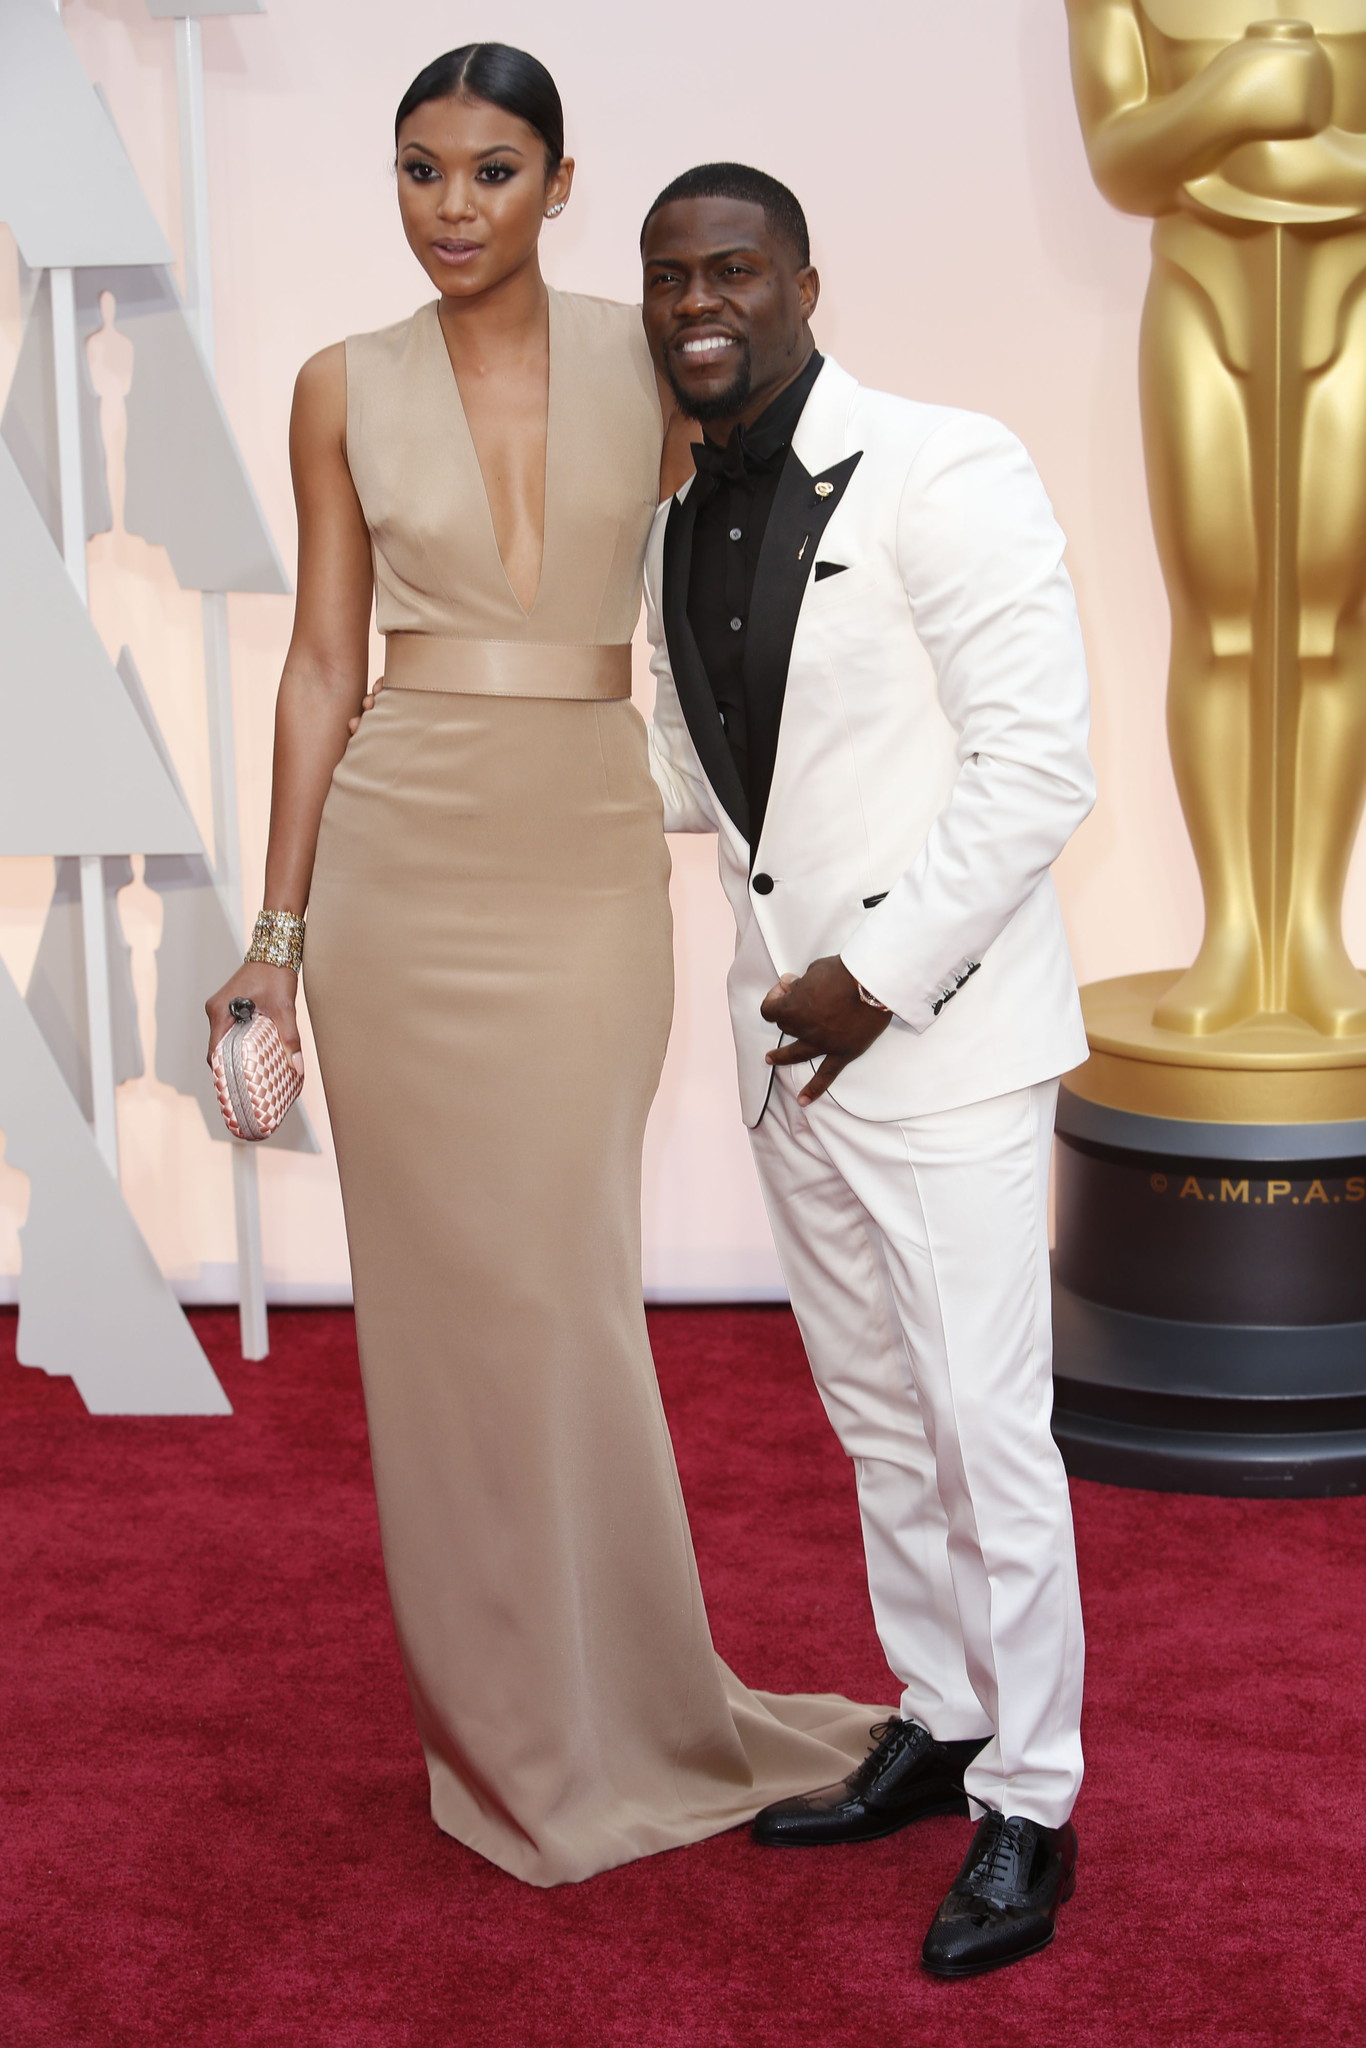 Oscar 2015 red carpet Kevin Hart and Eniko Parrish